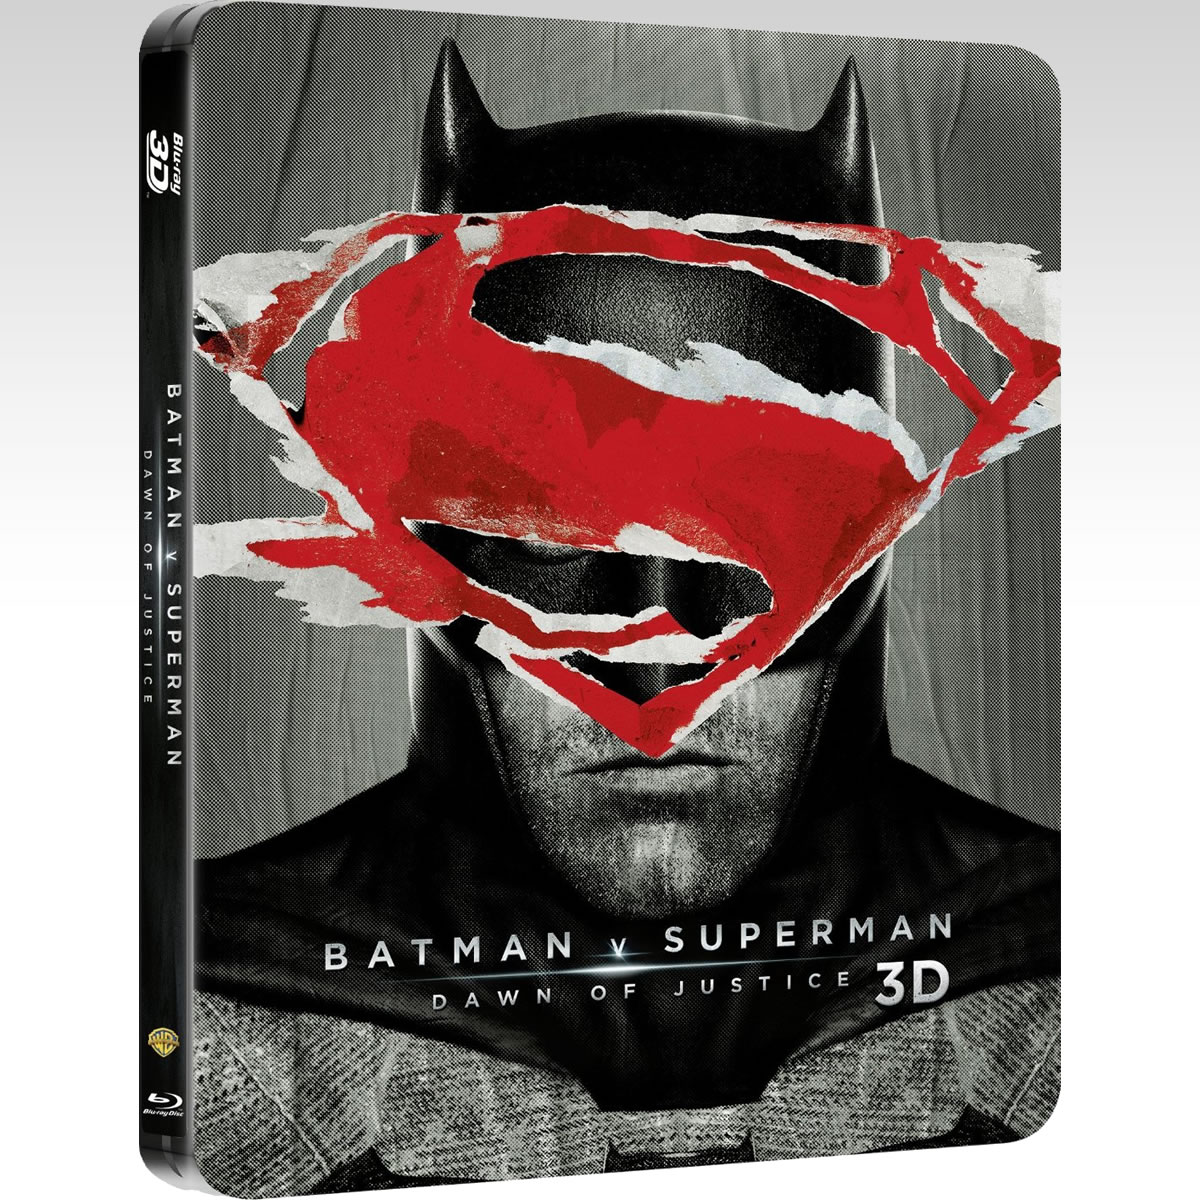 BATMAN V SUPERMAN: DAWN OF JUSTICE 3D - BATMAN V SUPERMAN: Η ΑΥΓΗ ΤΗΣ ΔΙΚΑΙΟΣΥΝΗΣ 3D Limited Edition FuturePak (BLU-RAY 3D + BLU-RAY)